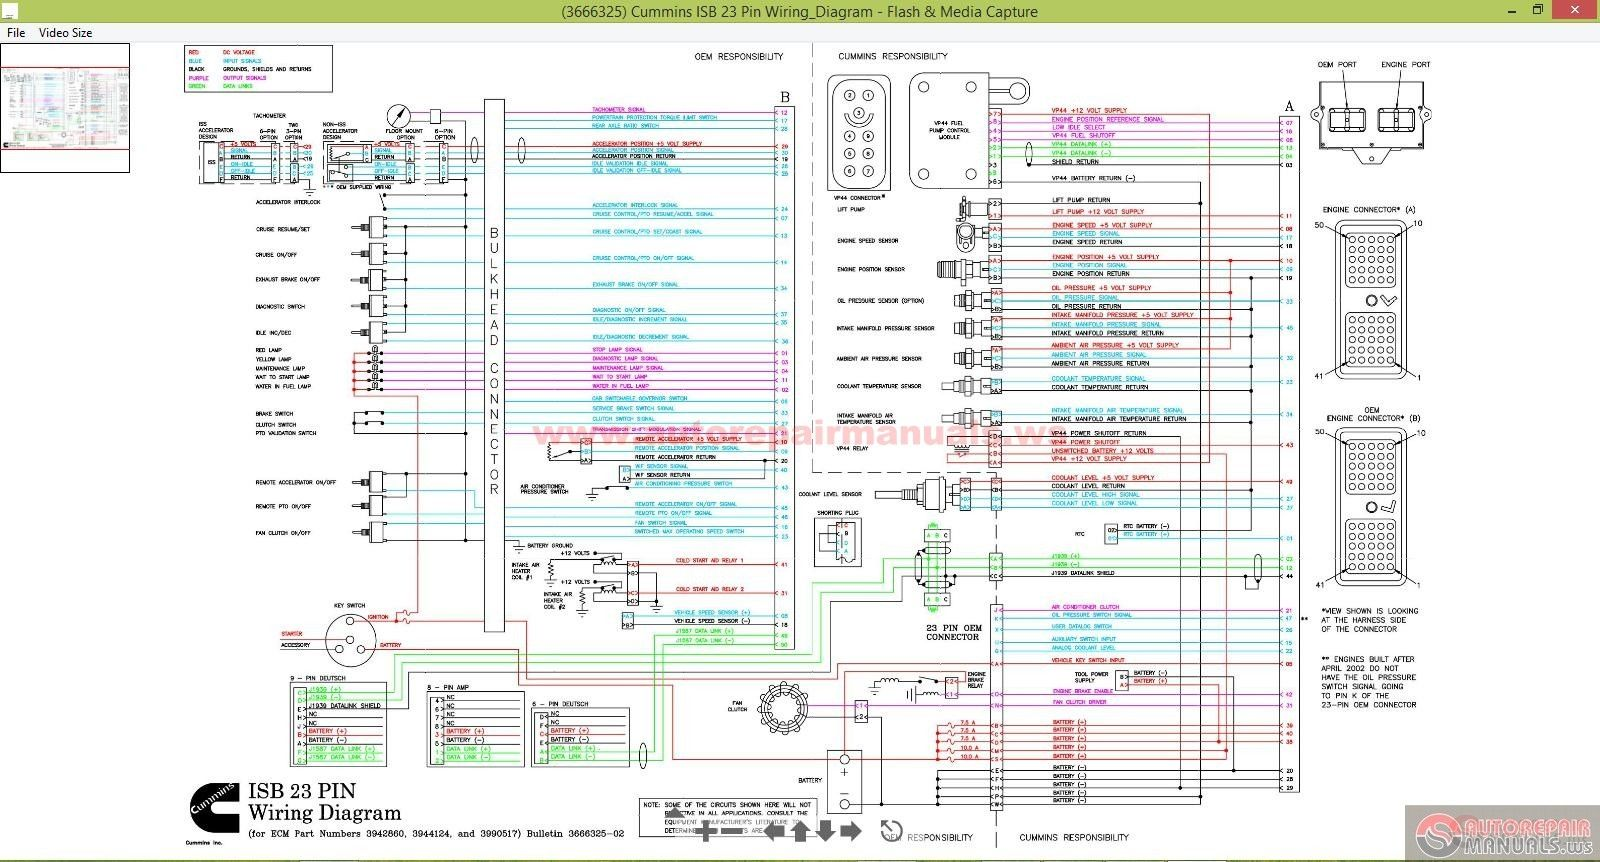 Click This Image To Show The Full Size Version Cummins Trailer Wiring Diagram Circuit Diagram